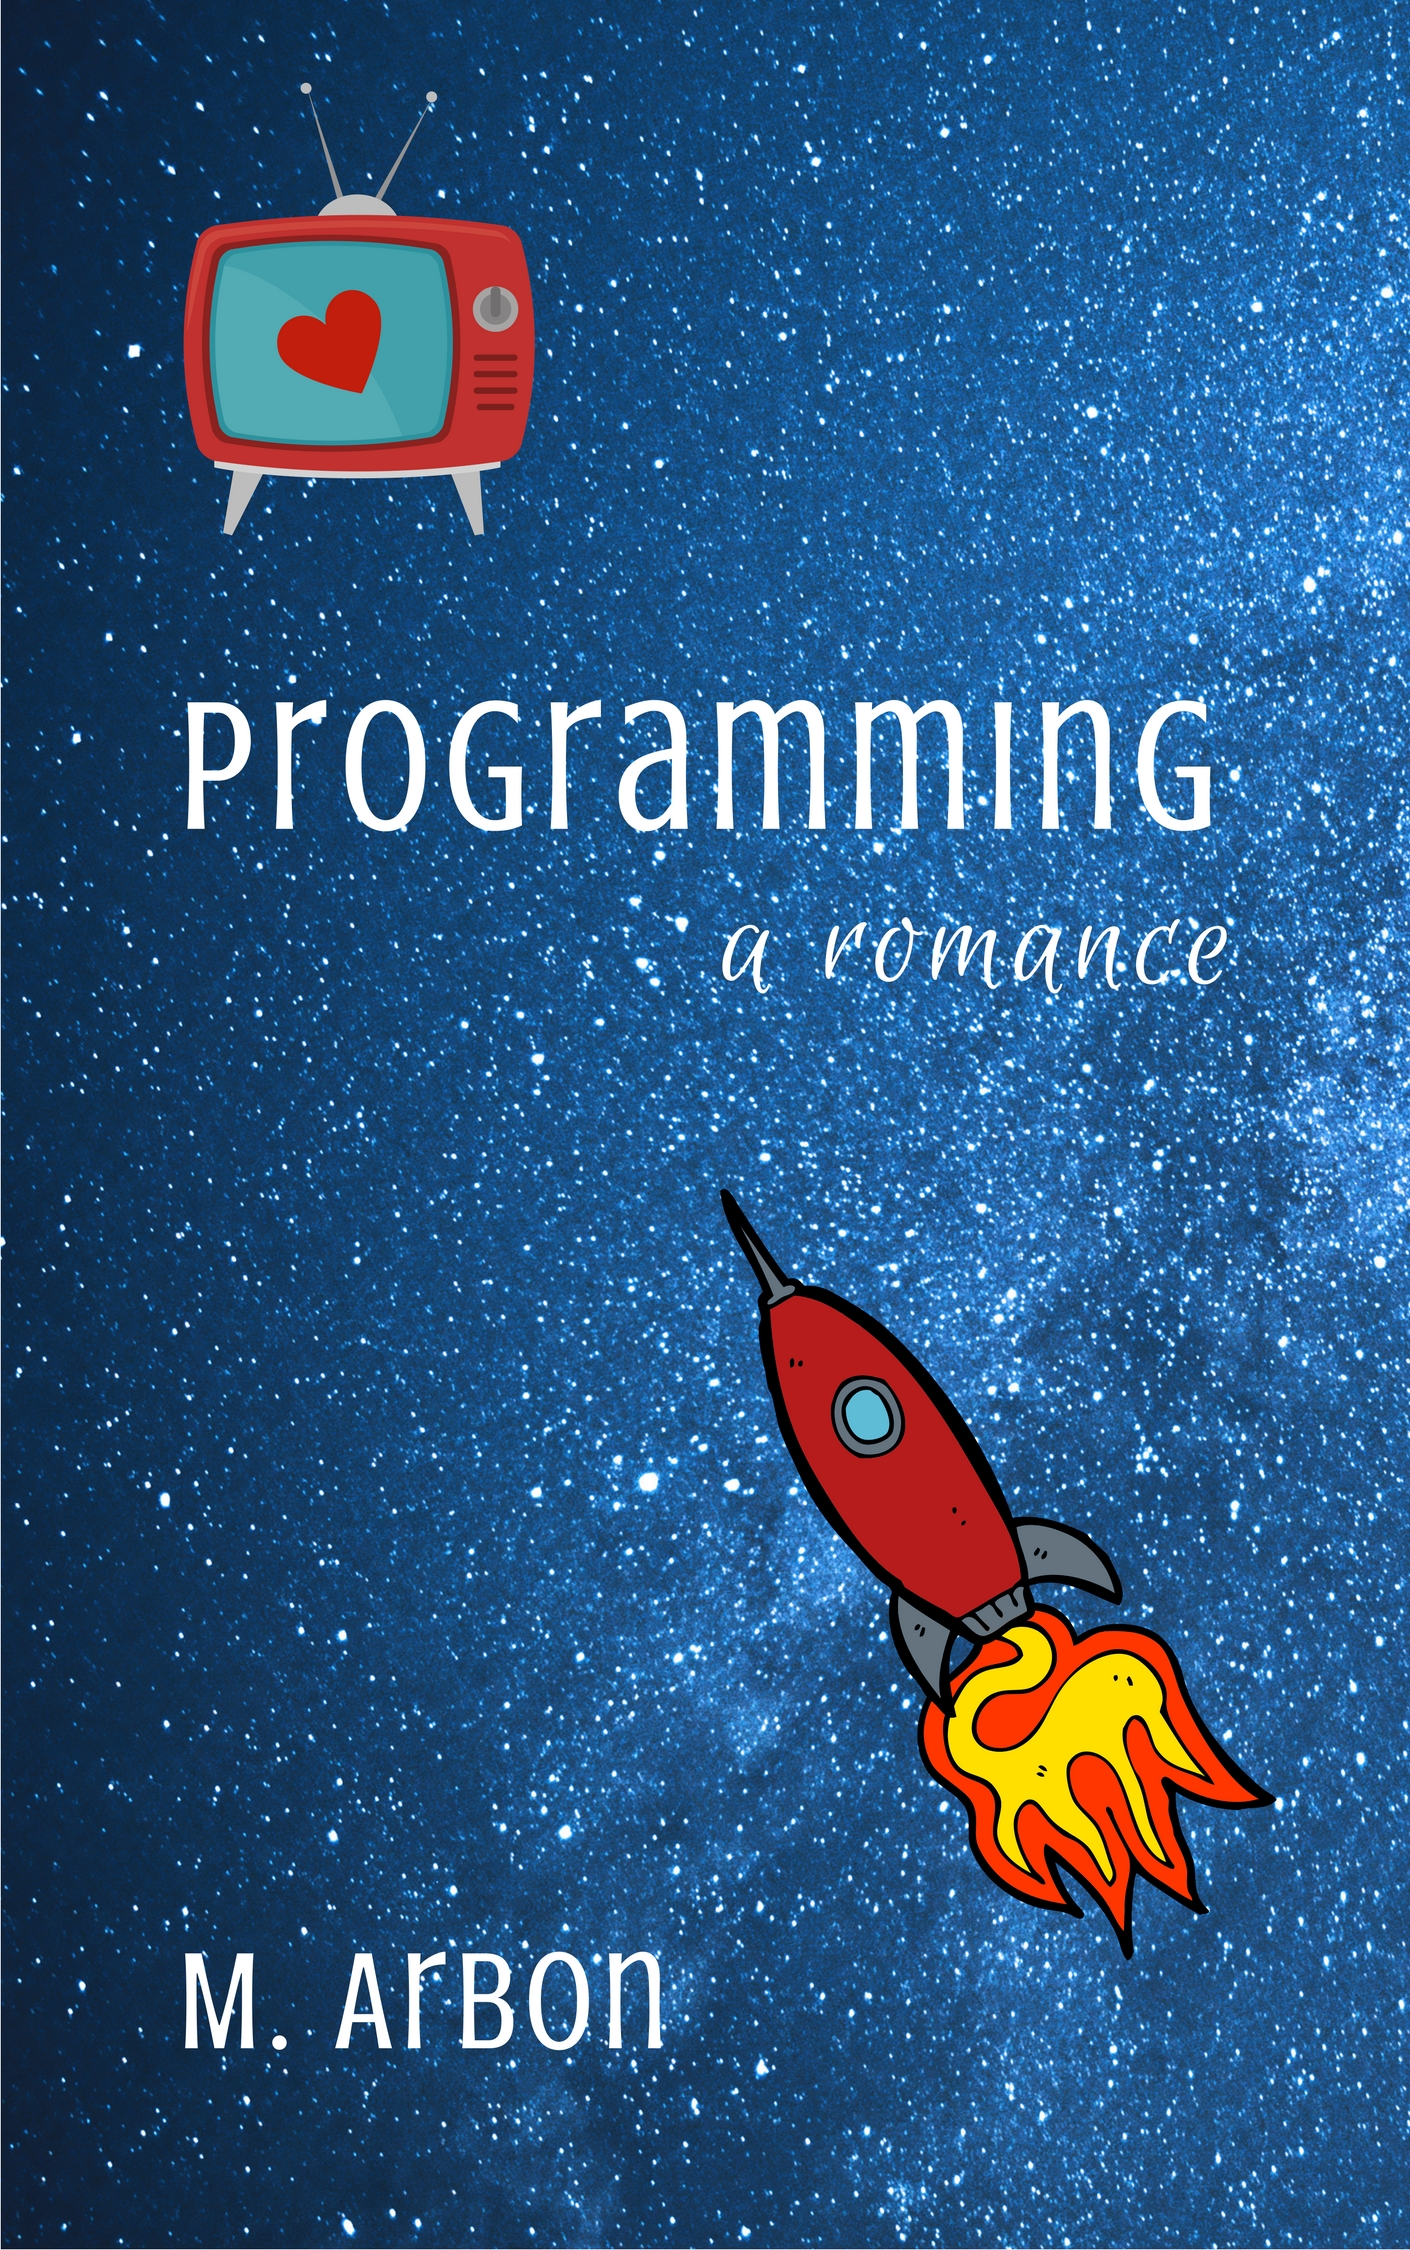 Cover of Programming, showing a spaceship, stars, and TV set